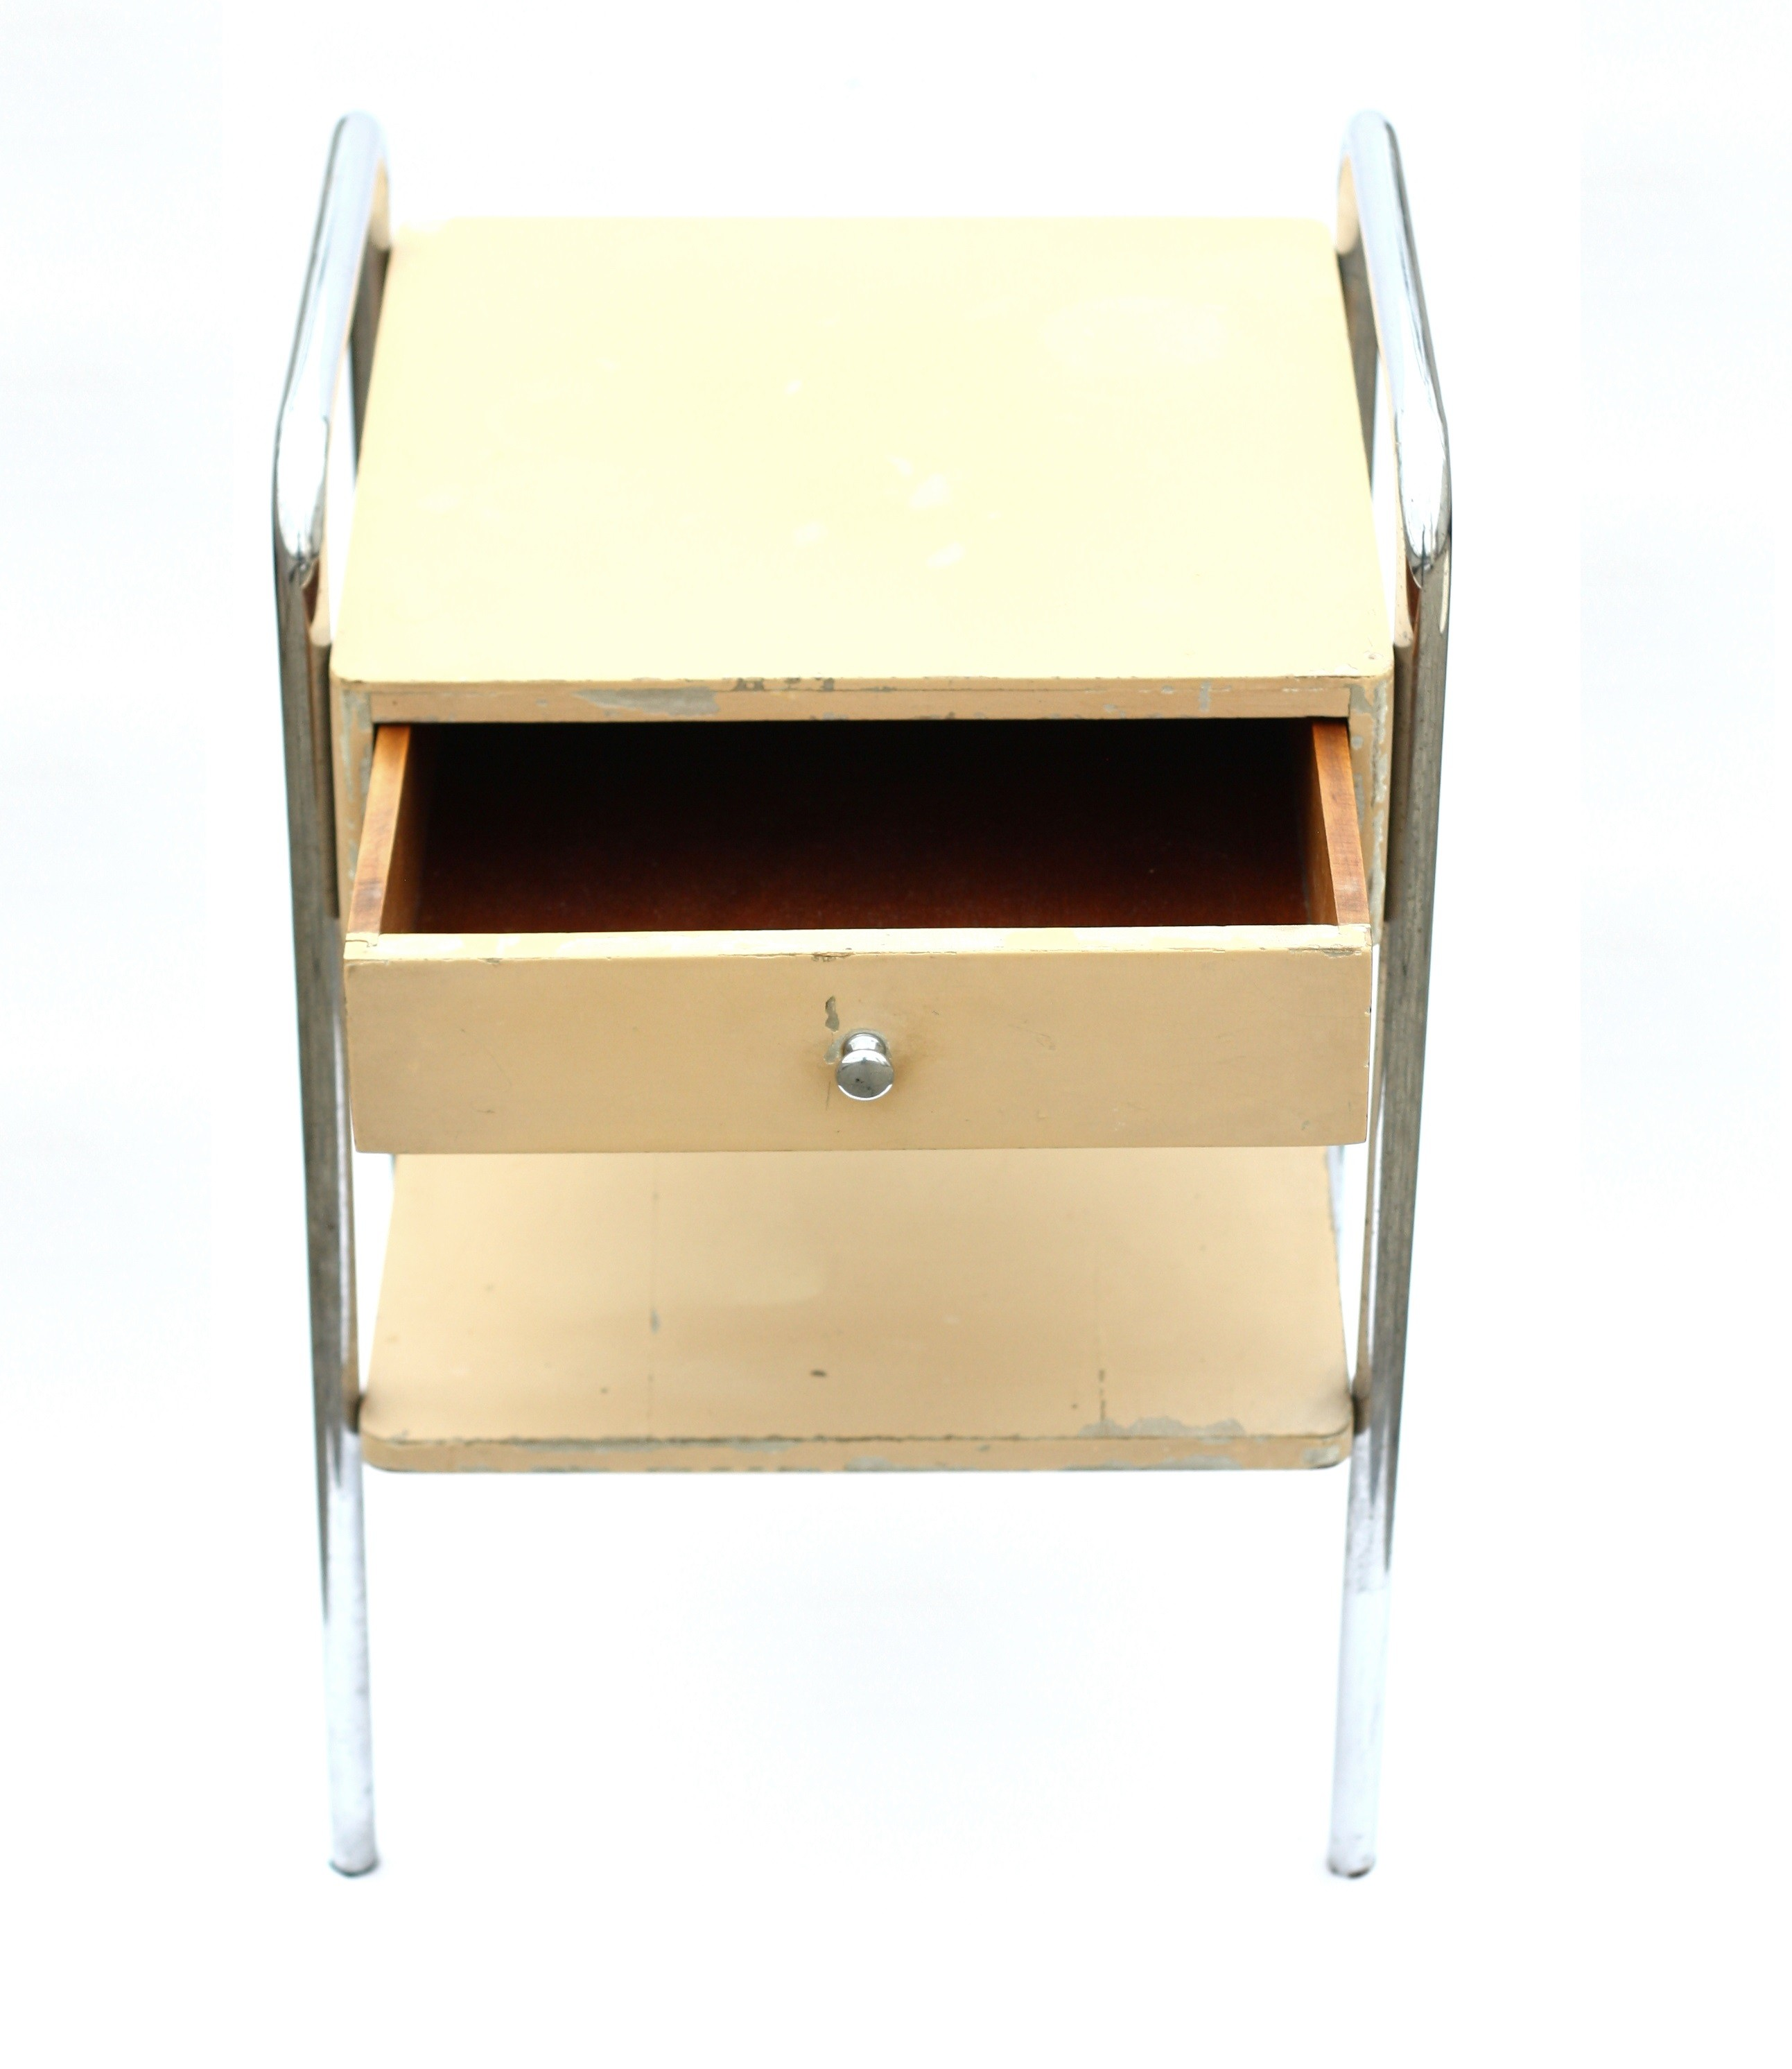 Vintage bedside table ideas - Vintage Bedside Table With Drawer Robert Slezak 1940s Previous Next